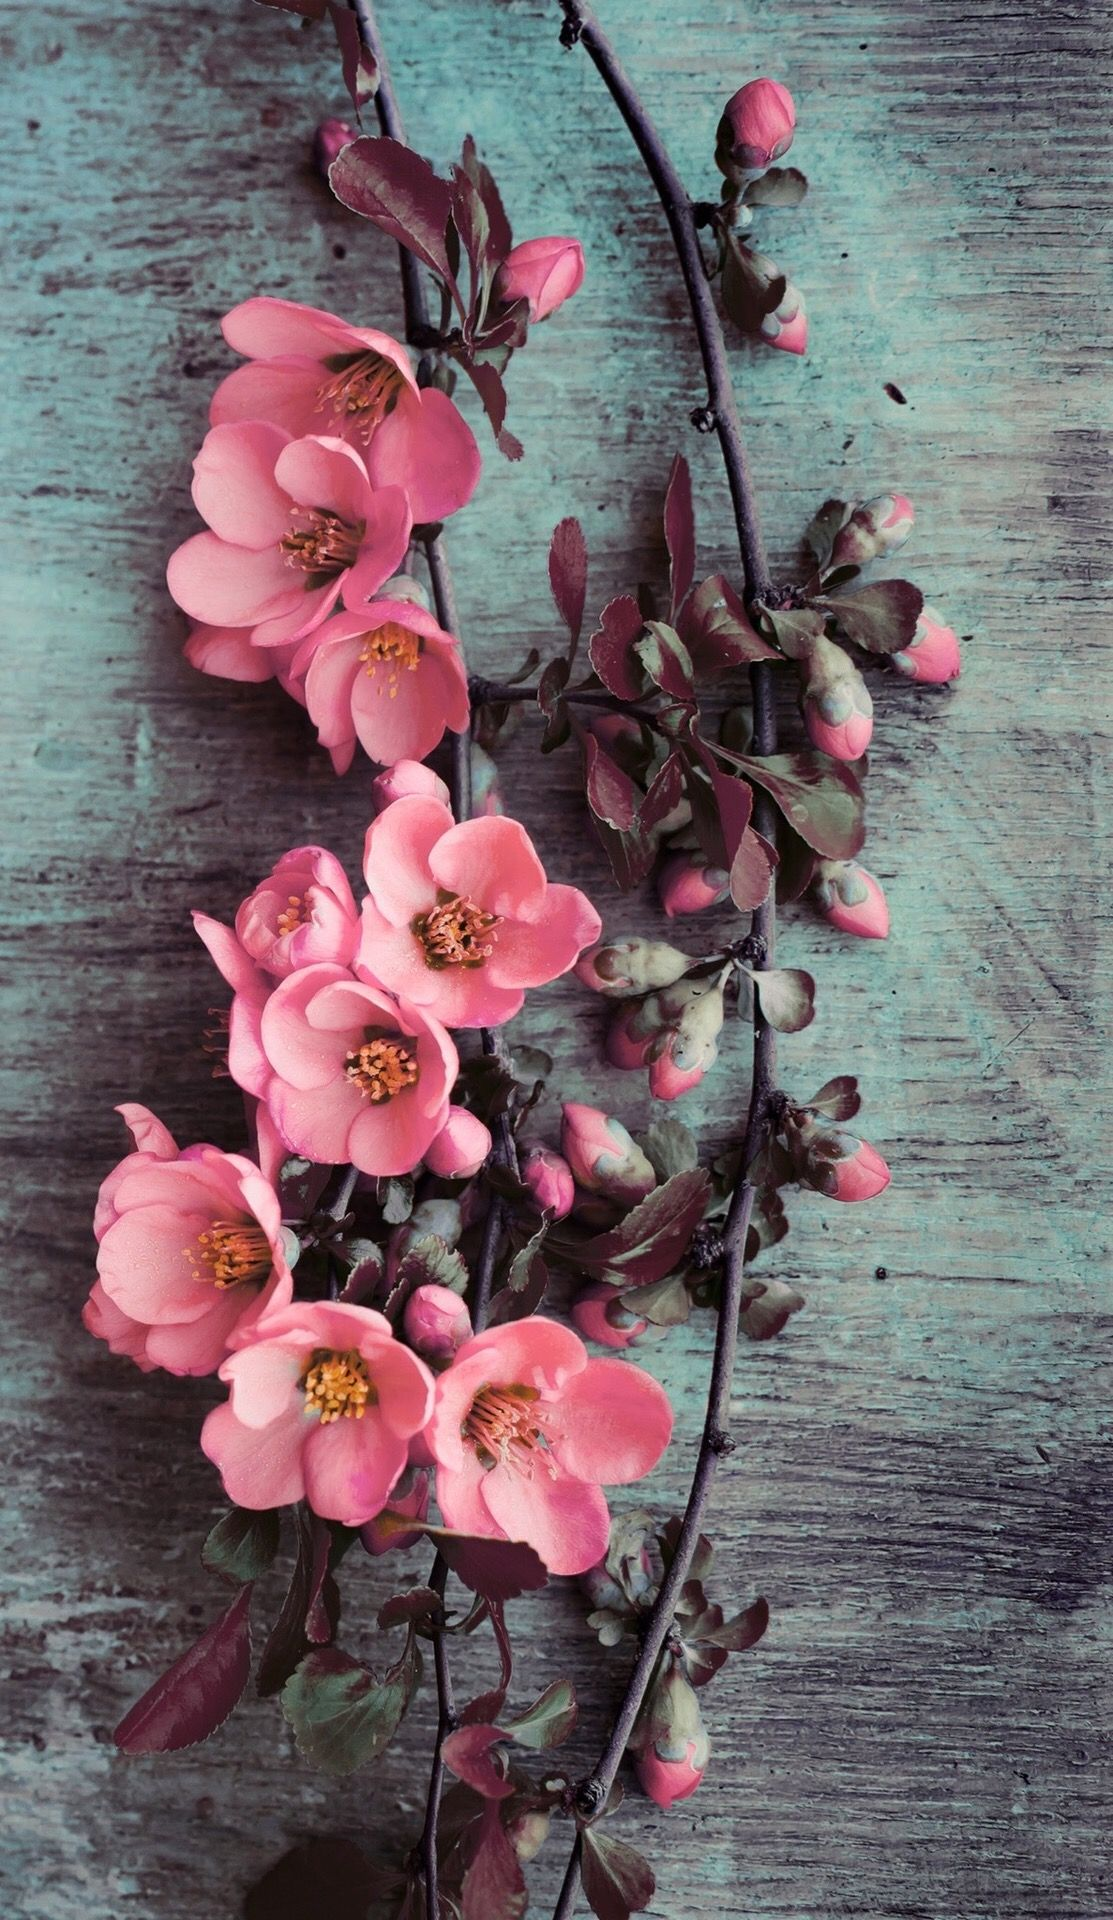 Wallpaper Iphone Beauty Pink Flowers  E2 9a Aa